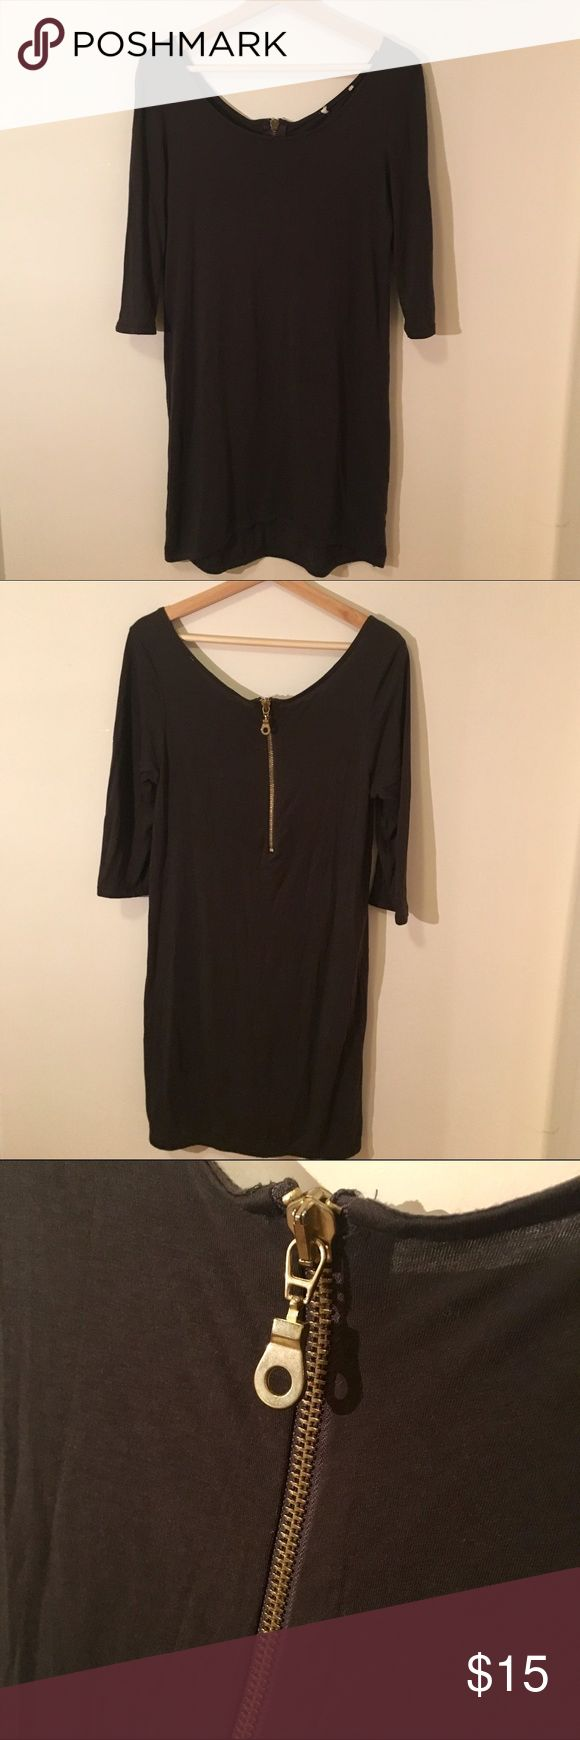 ZARA 3/4 sleeve zip back dress Essential Wardrobe piece! This dress was bought at Zara but tag was removed because it was itchy. Cotton, light-weight, black mini with 3/4 sleeves. Cool brass zipper detail in the back! Zara Dresses Mini